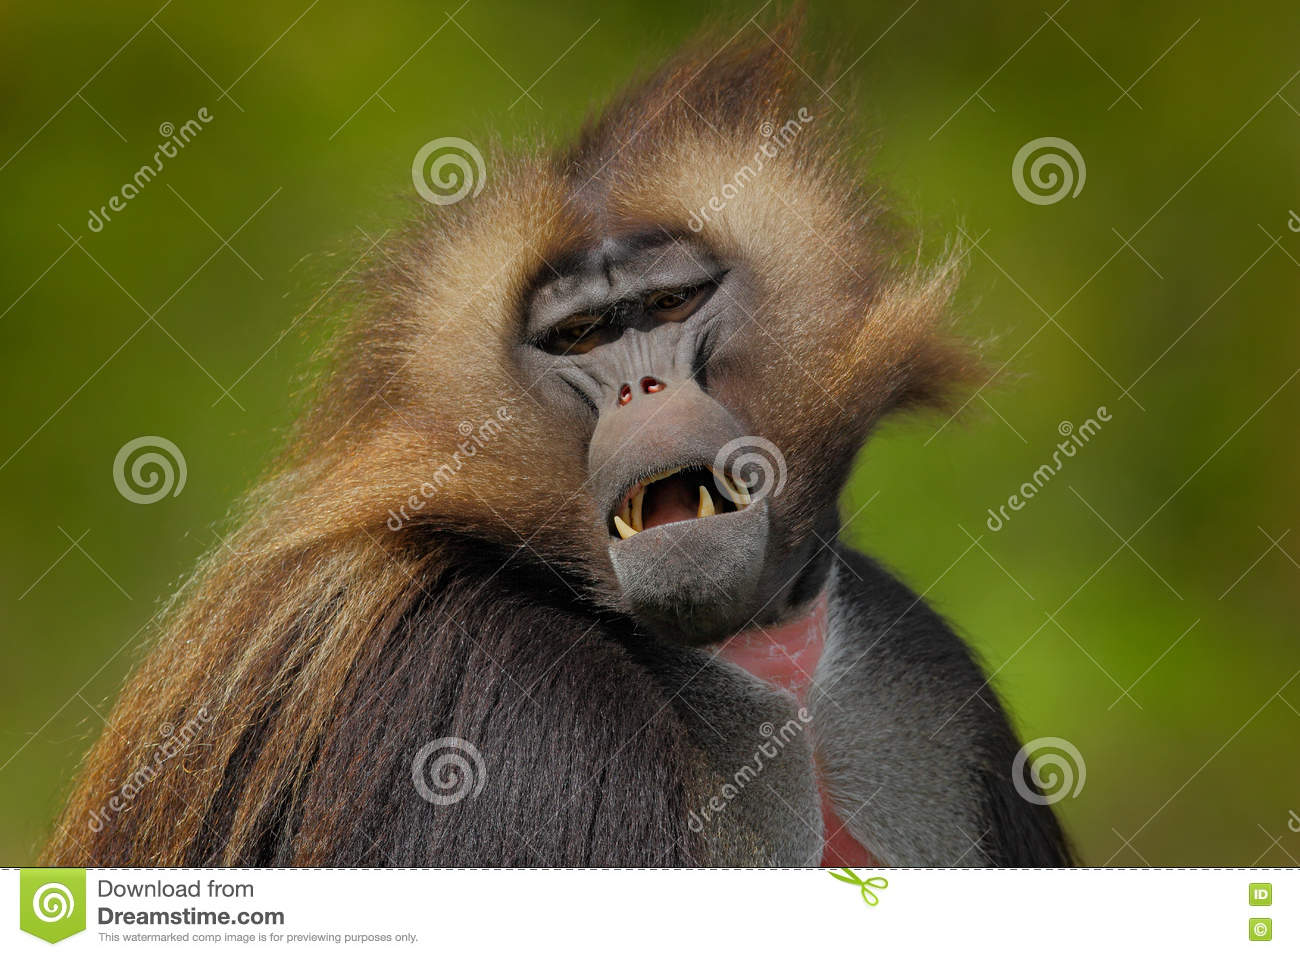 Detail portrait of monkey. Portrait of Gelada Baboon with open muzzle with tooths. Portrait of monkey from African mountain.